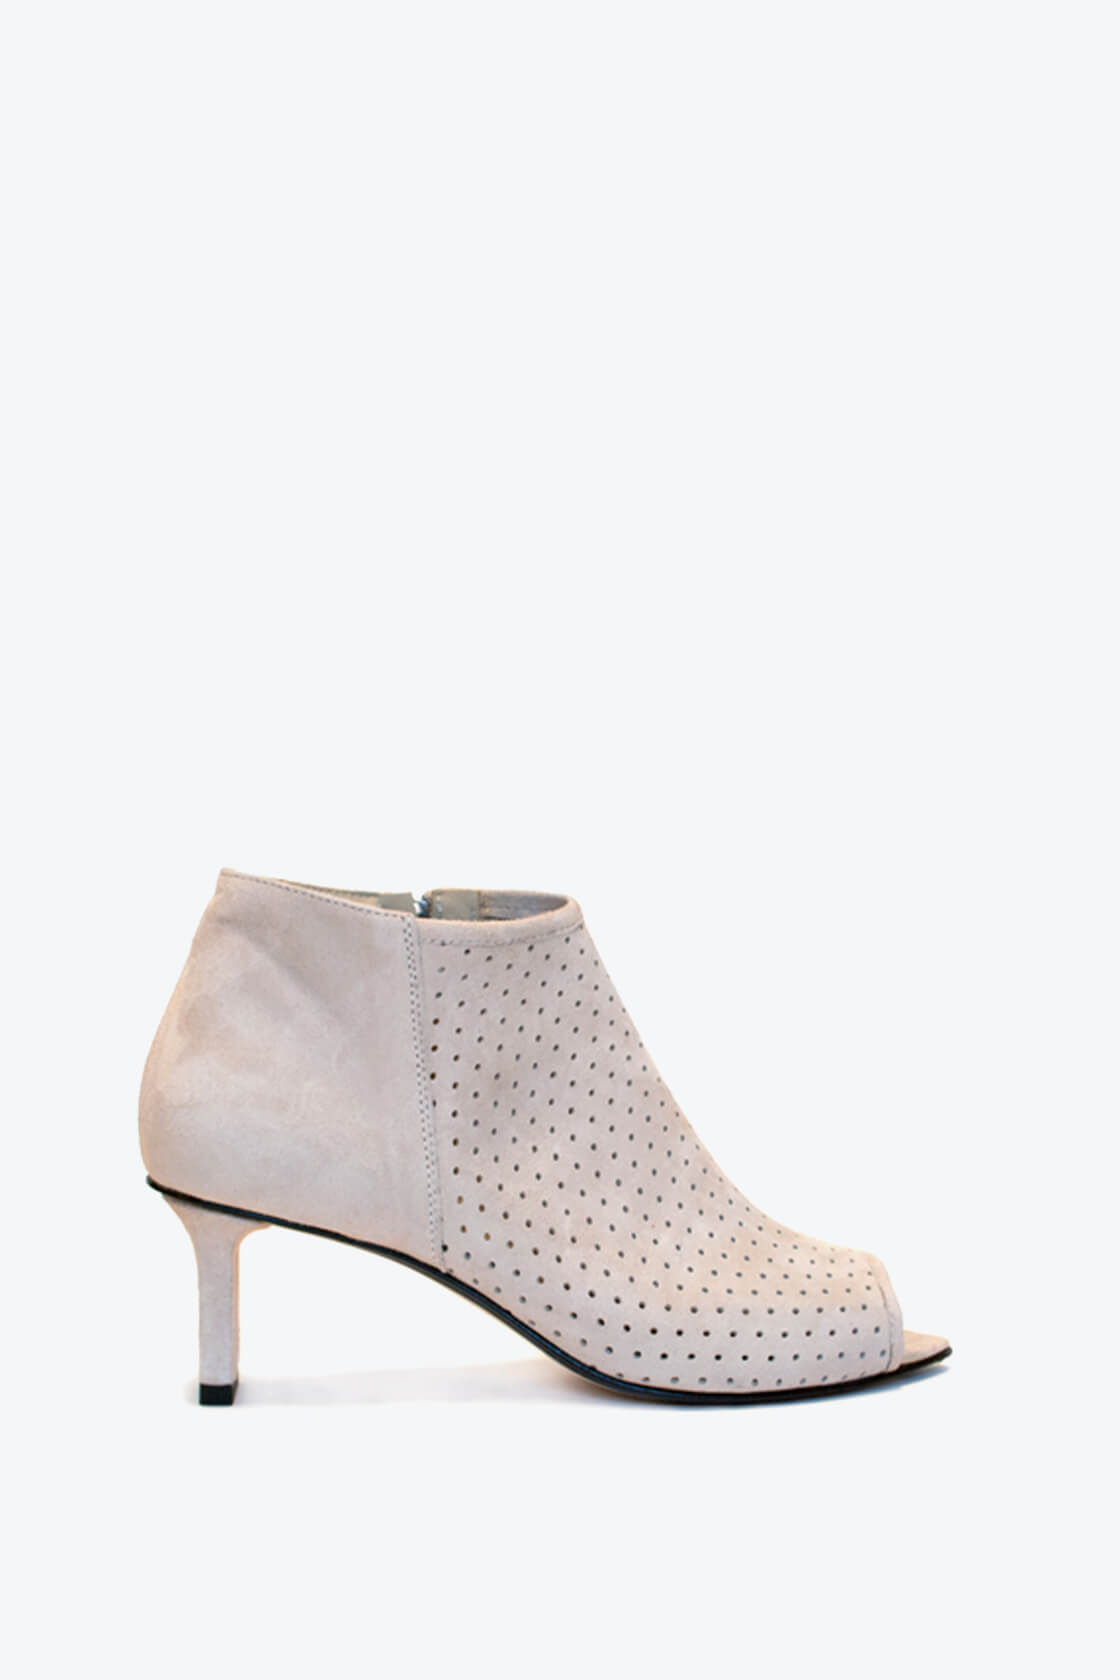 EJK0000006 Roxy ankle boots sand 1